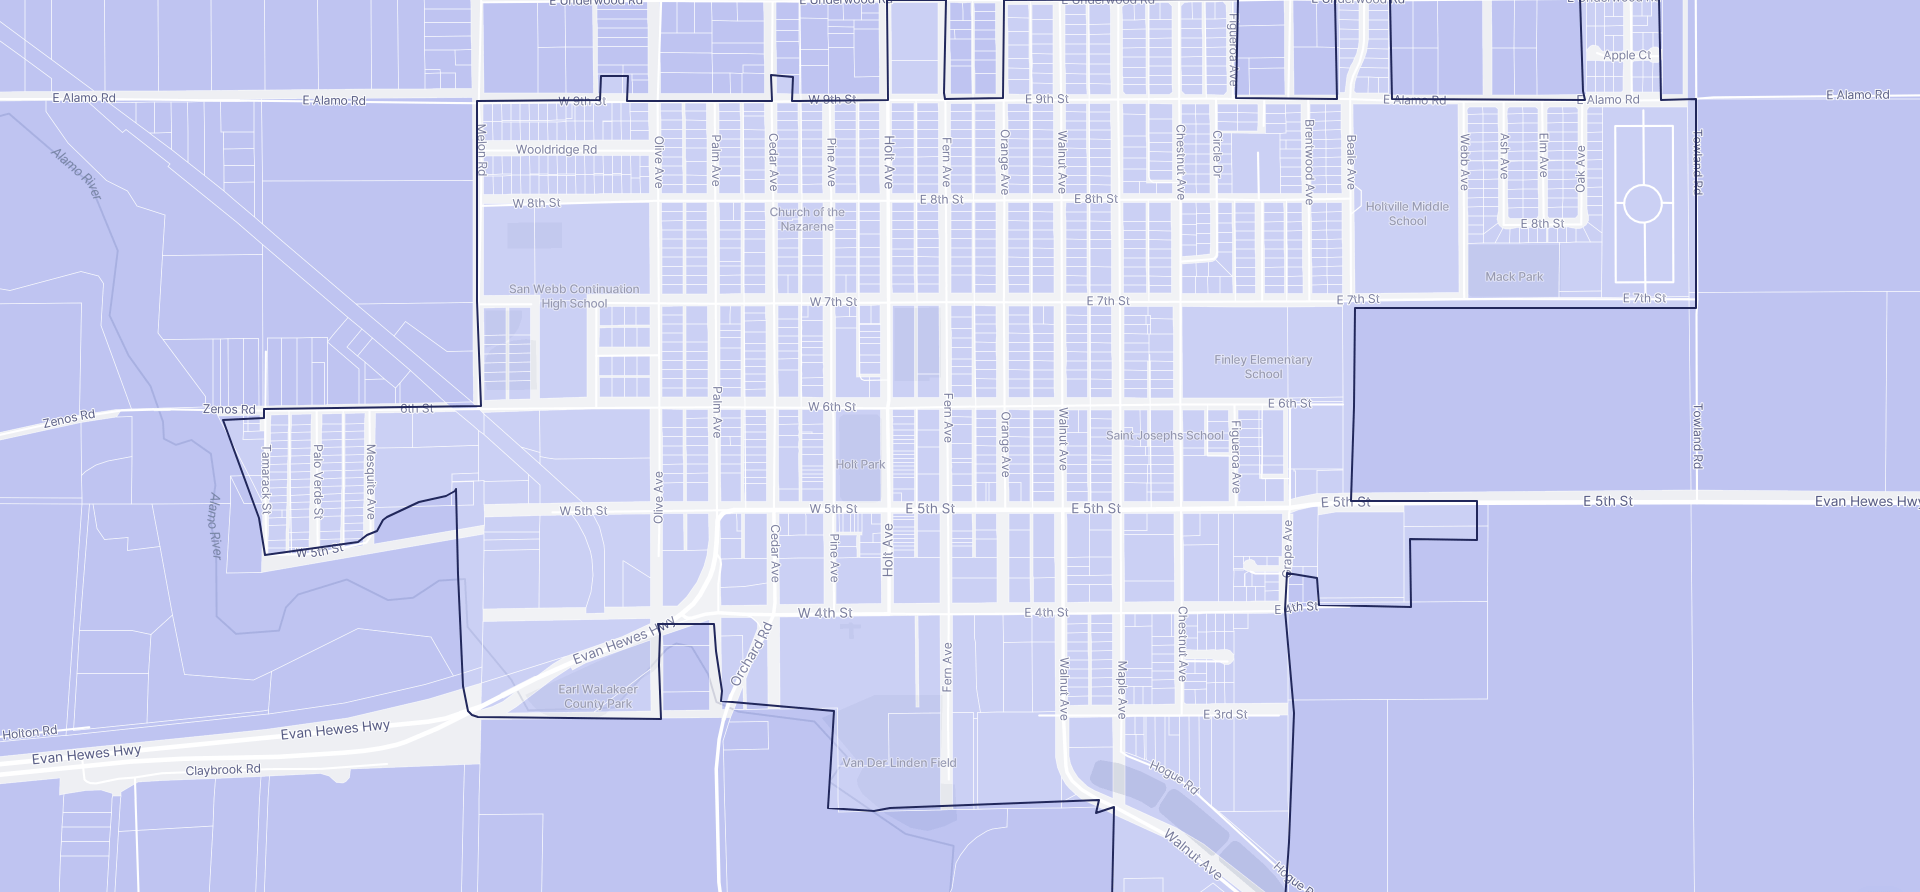 Image of Holtville boundaries on a map.